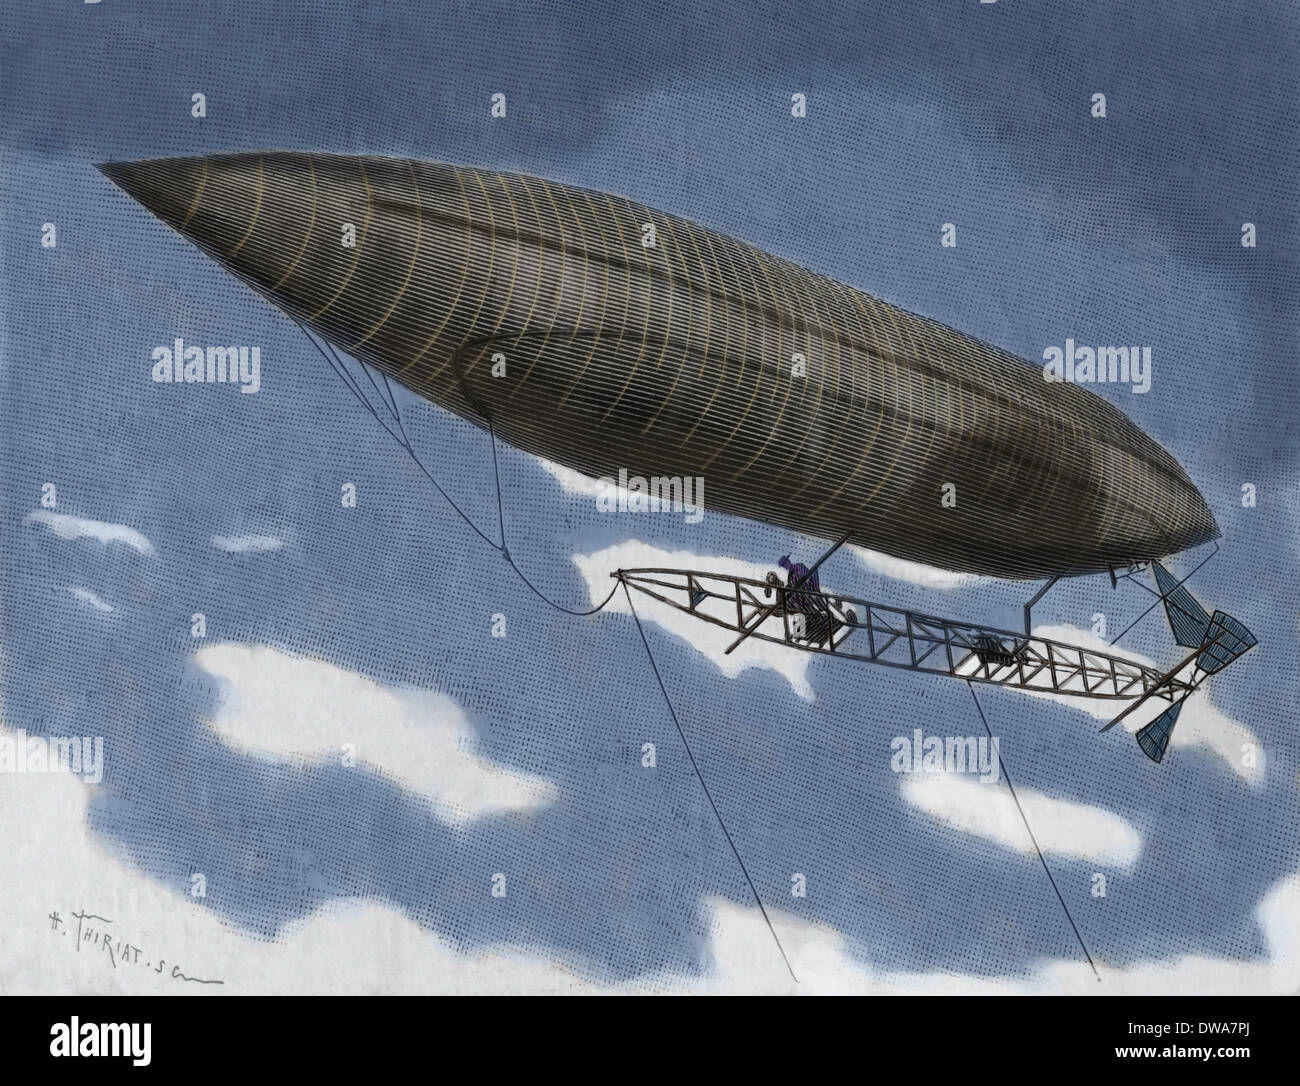 Alberto Santos-Dumont (1873-1932). Brazilian aviation pioneer. Flying dirigible. Engraving. Later colouration - Stock Image